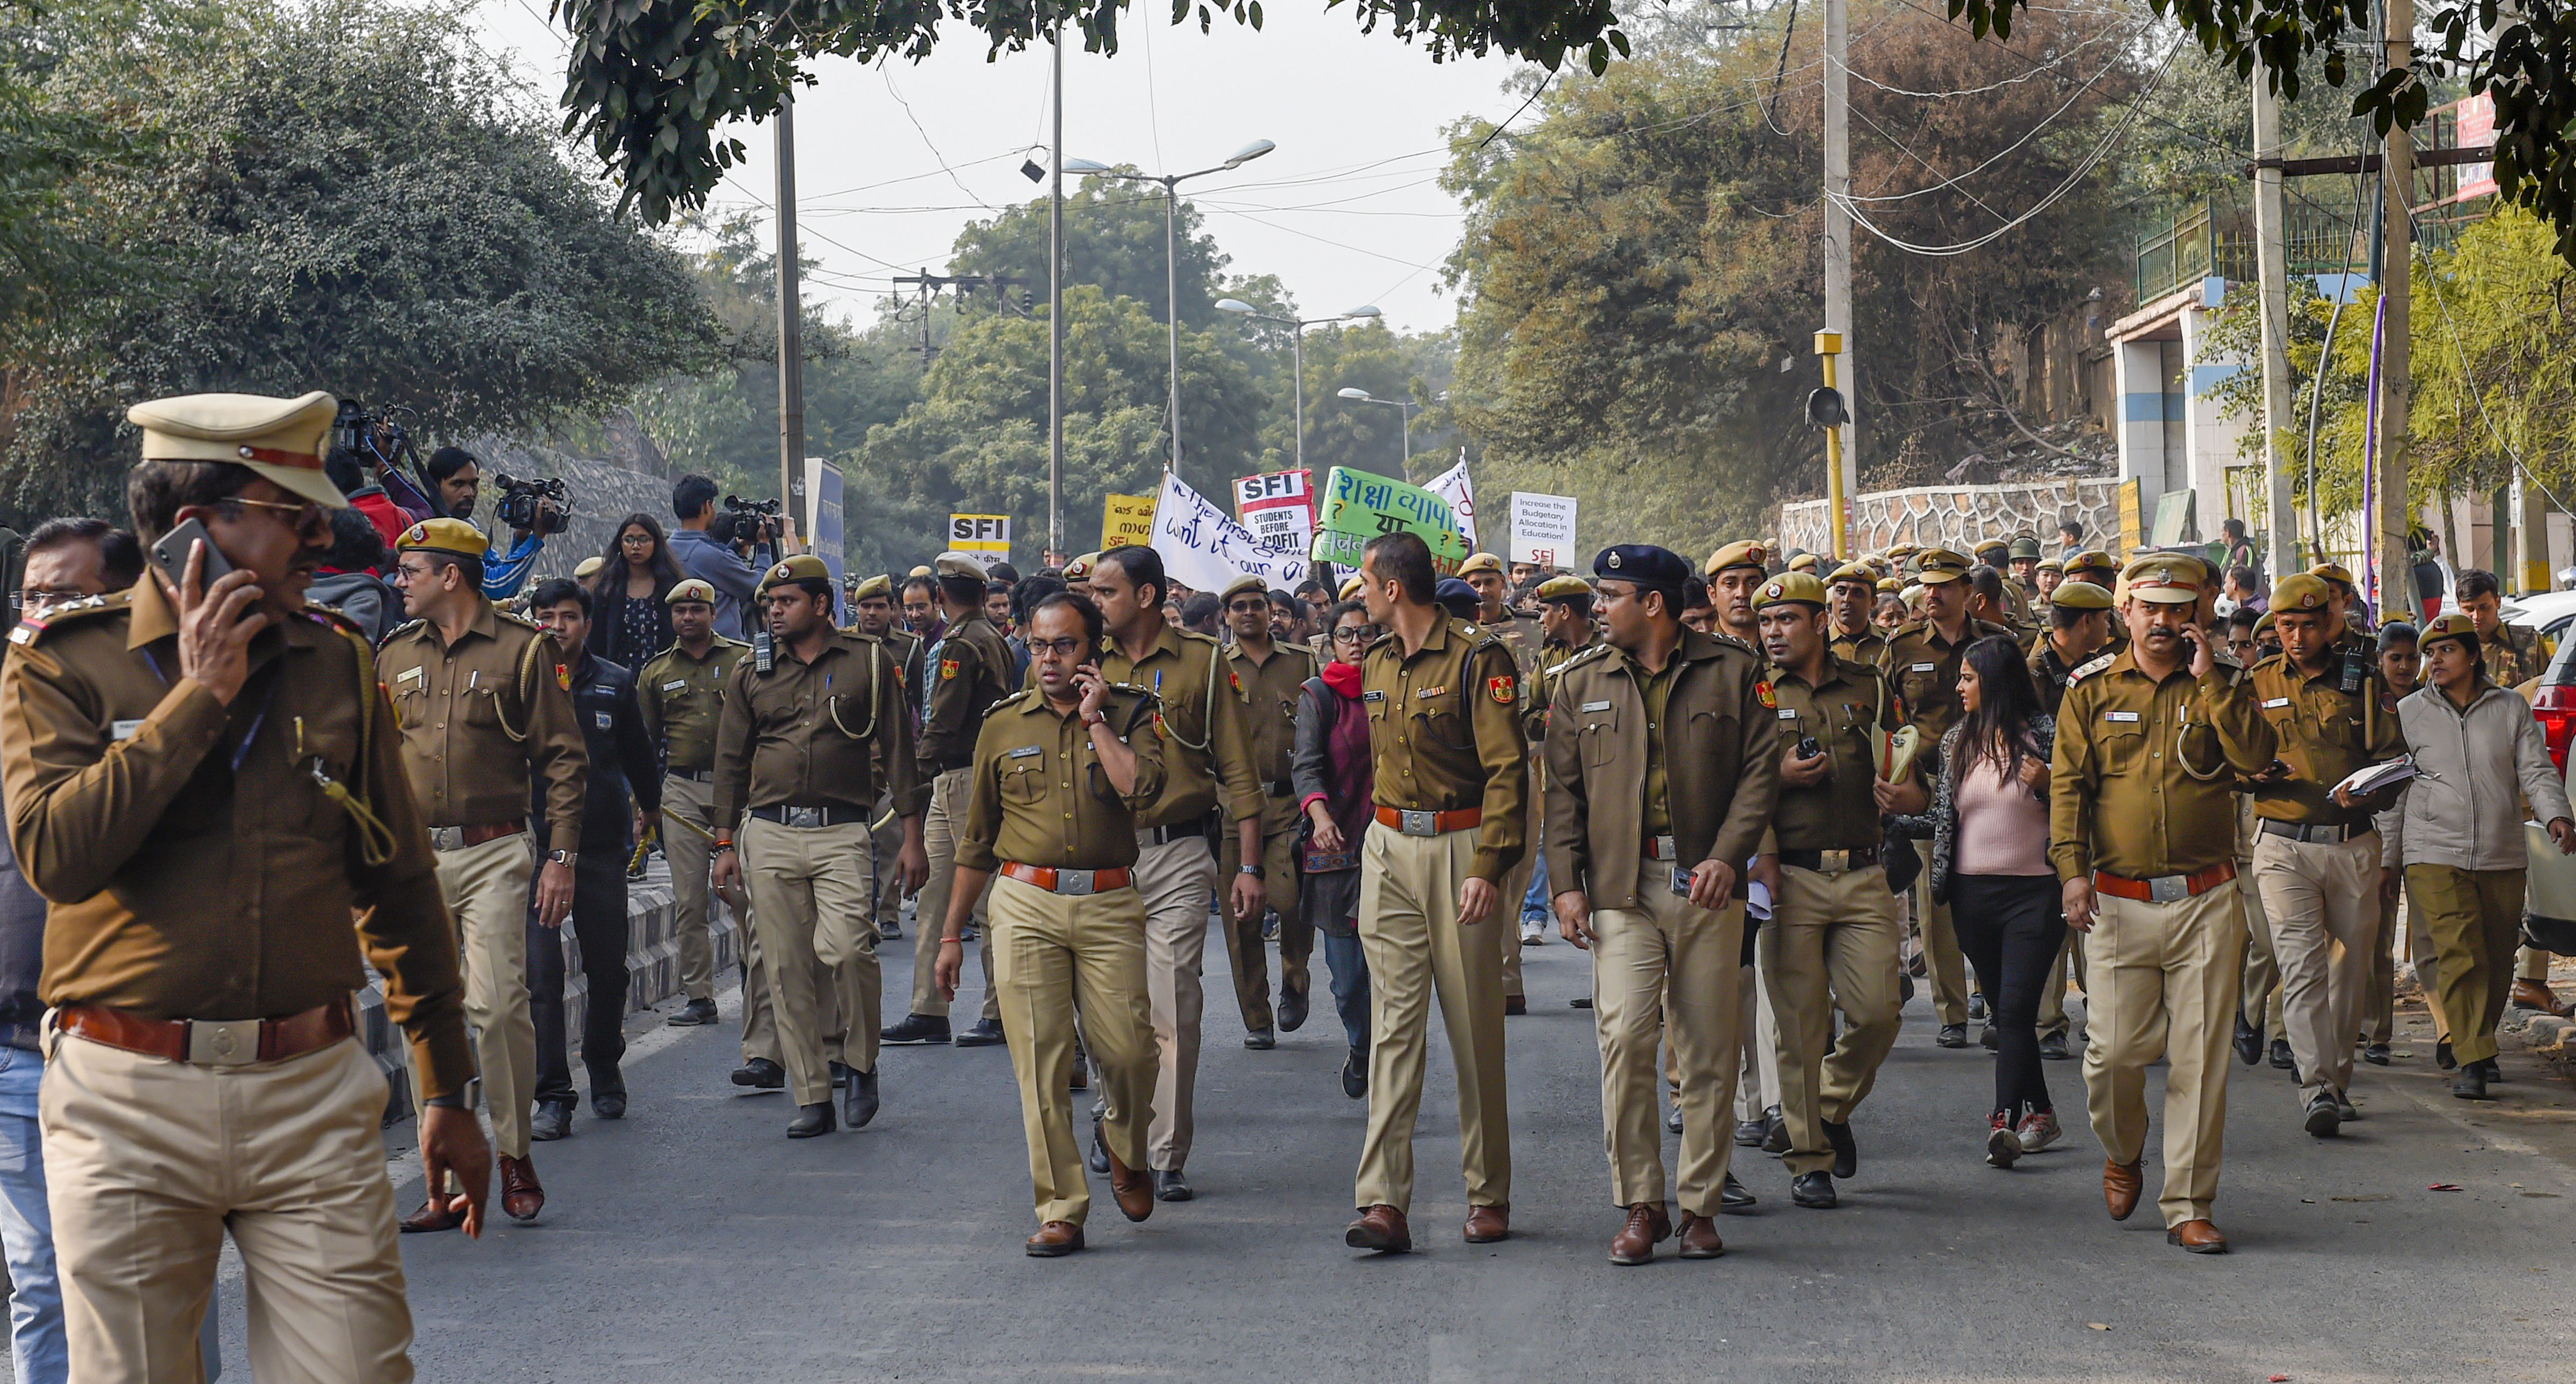 Police personnel during JNU students' march from the university campus to Rashtrapati Bhavan, in New Delhi, Monday, December 9, 2019.